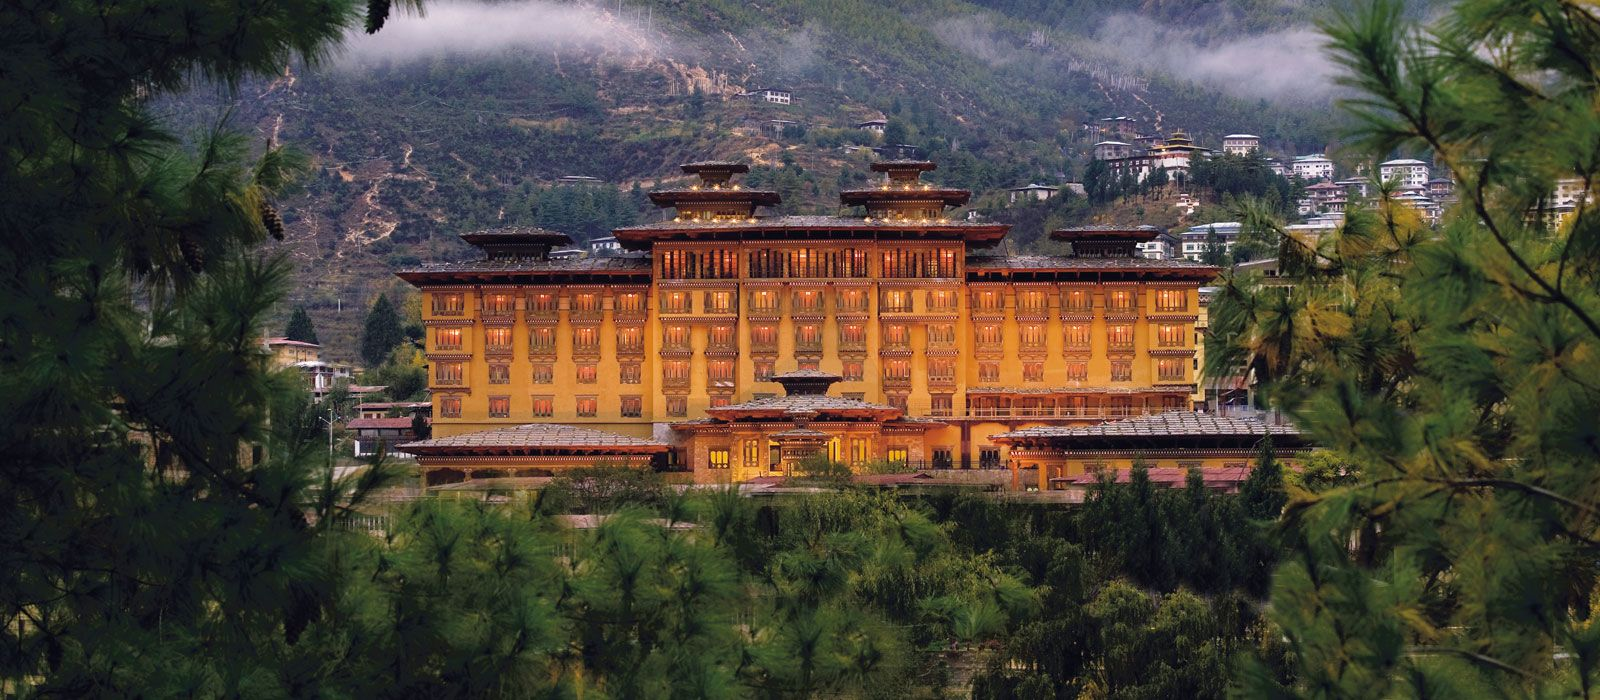 Luxury Bhutan & Thailand Paradise Islands Tour Trip 1